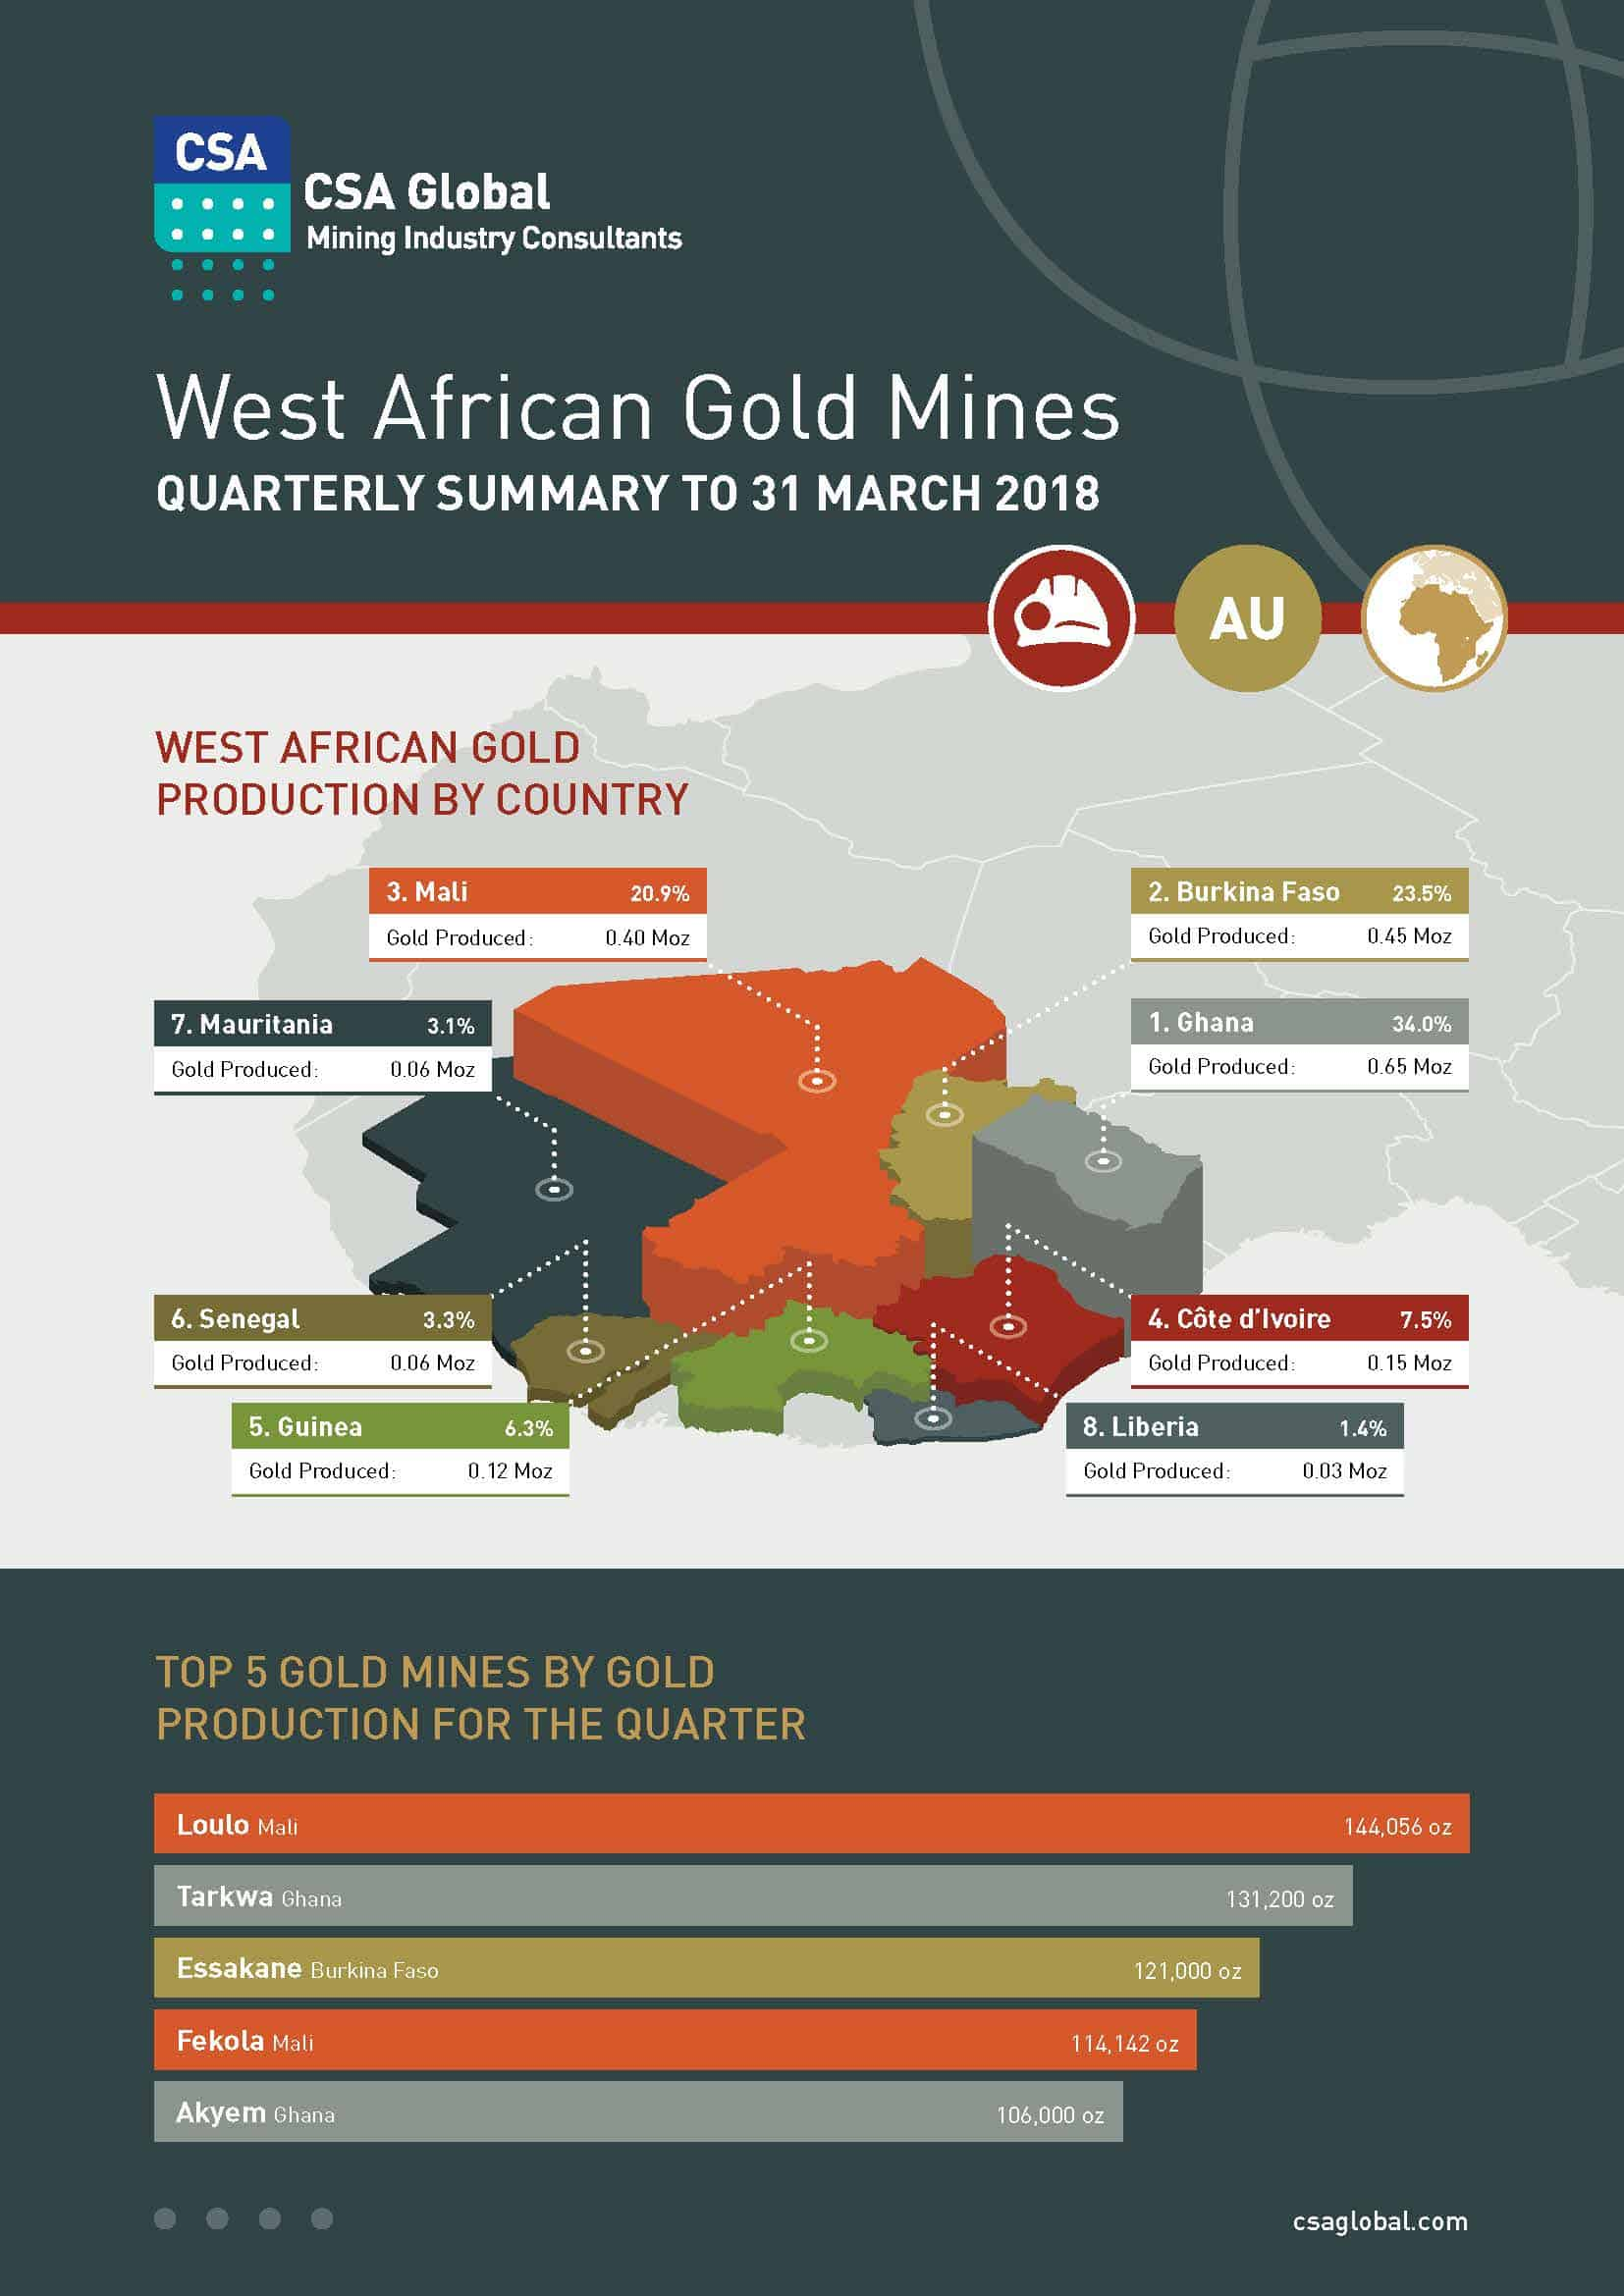 West African Gold Mines Quarterly Summary